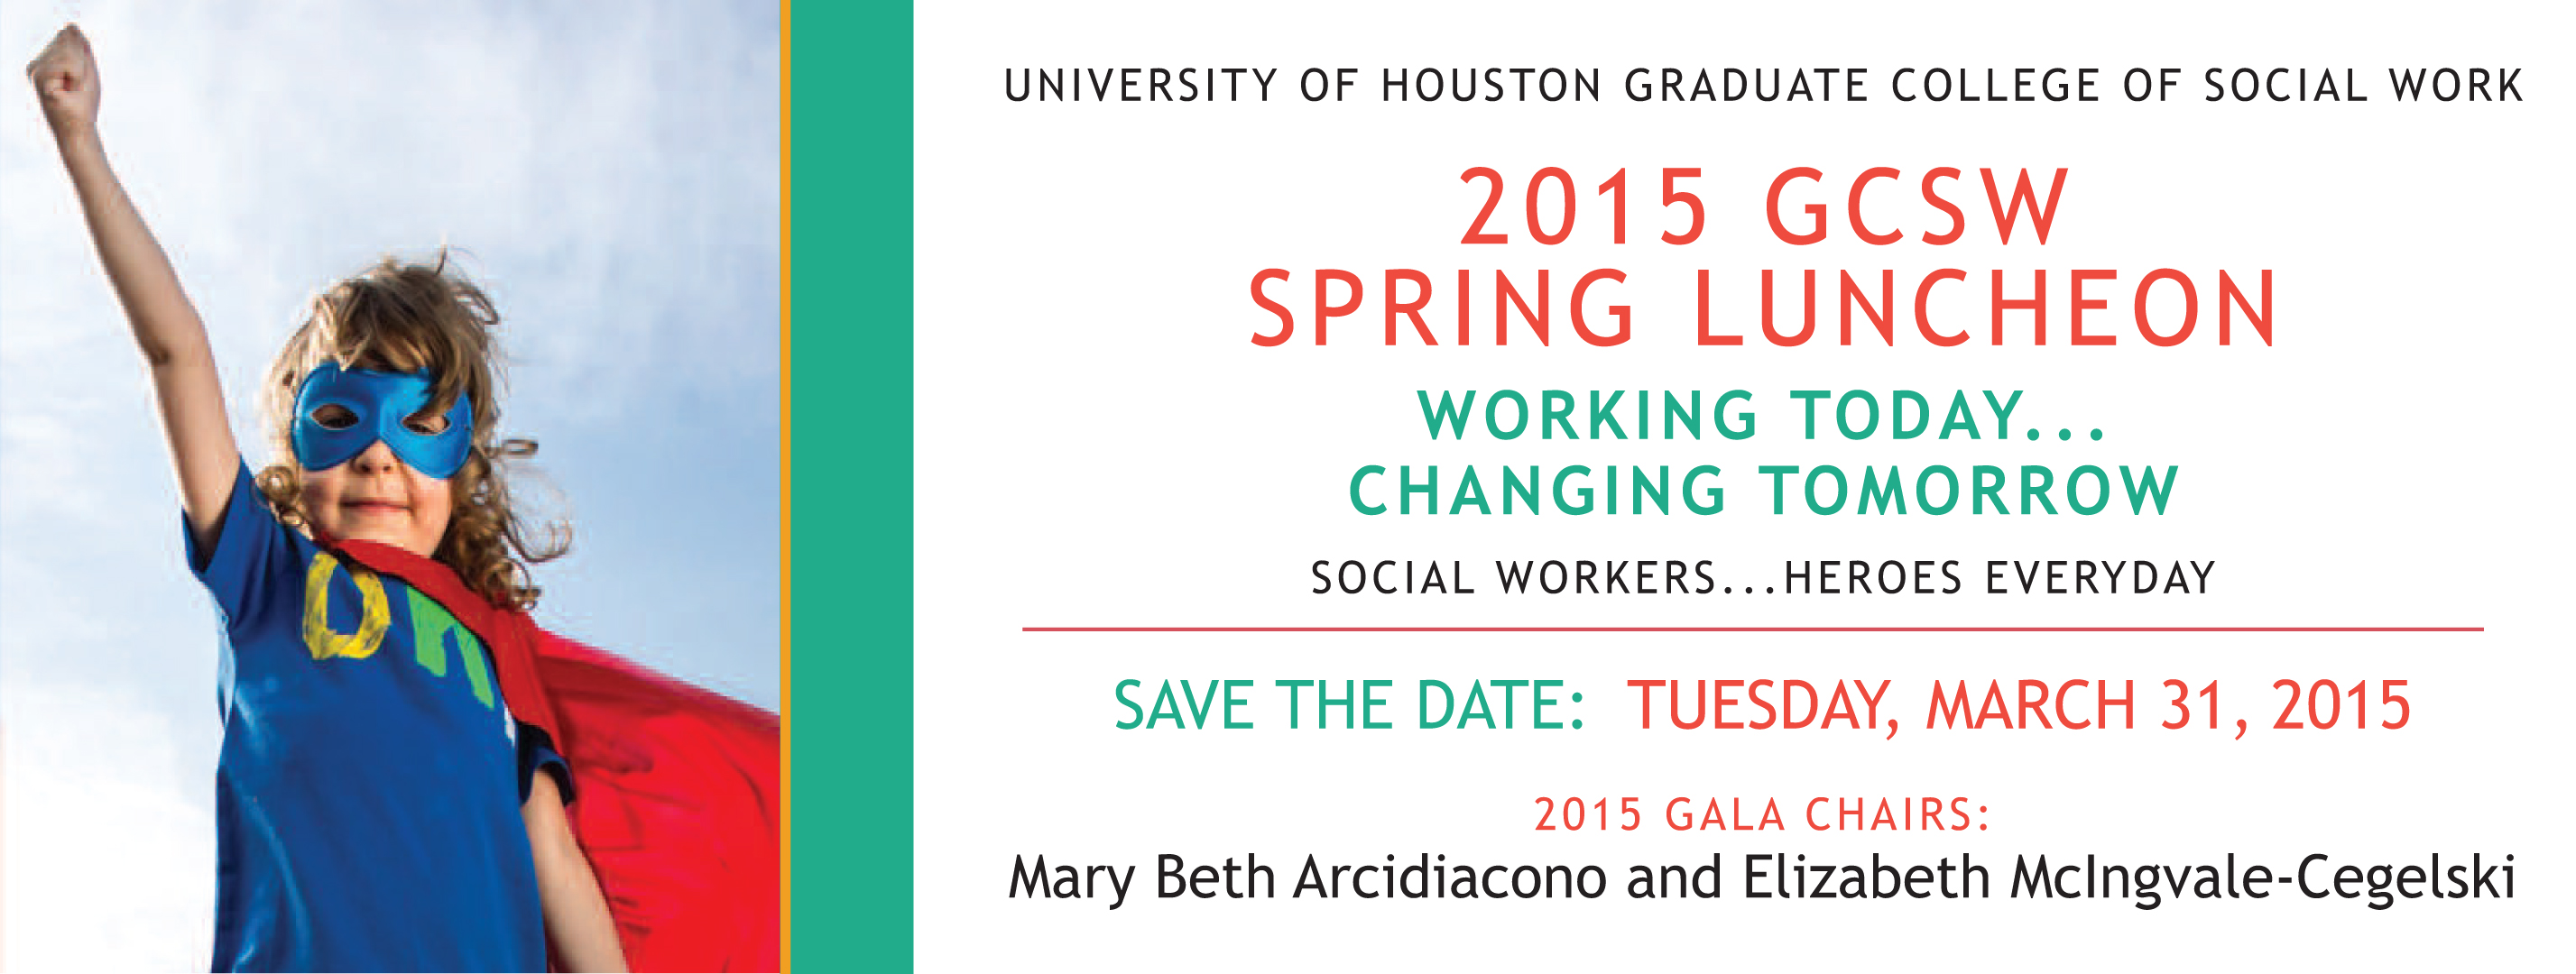 2015 GCSW Spring Luncheon